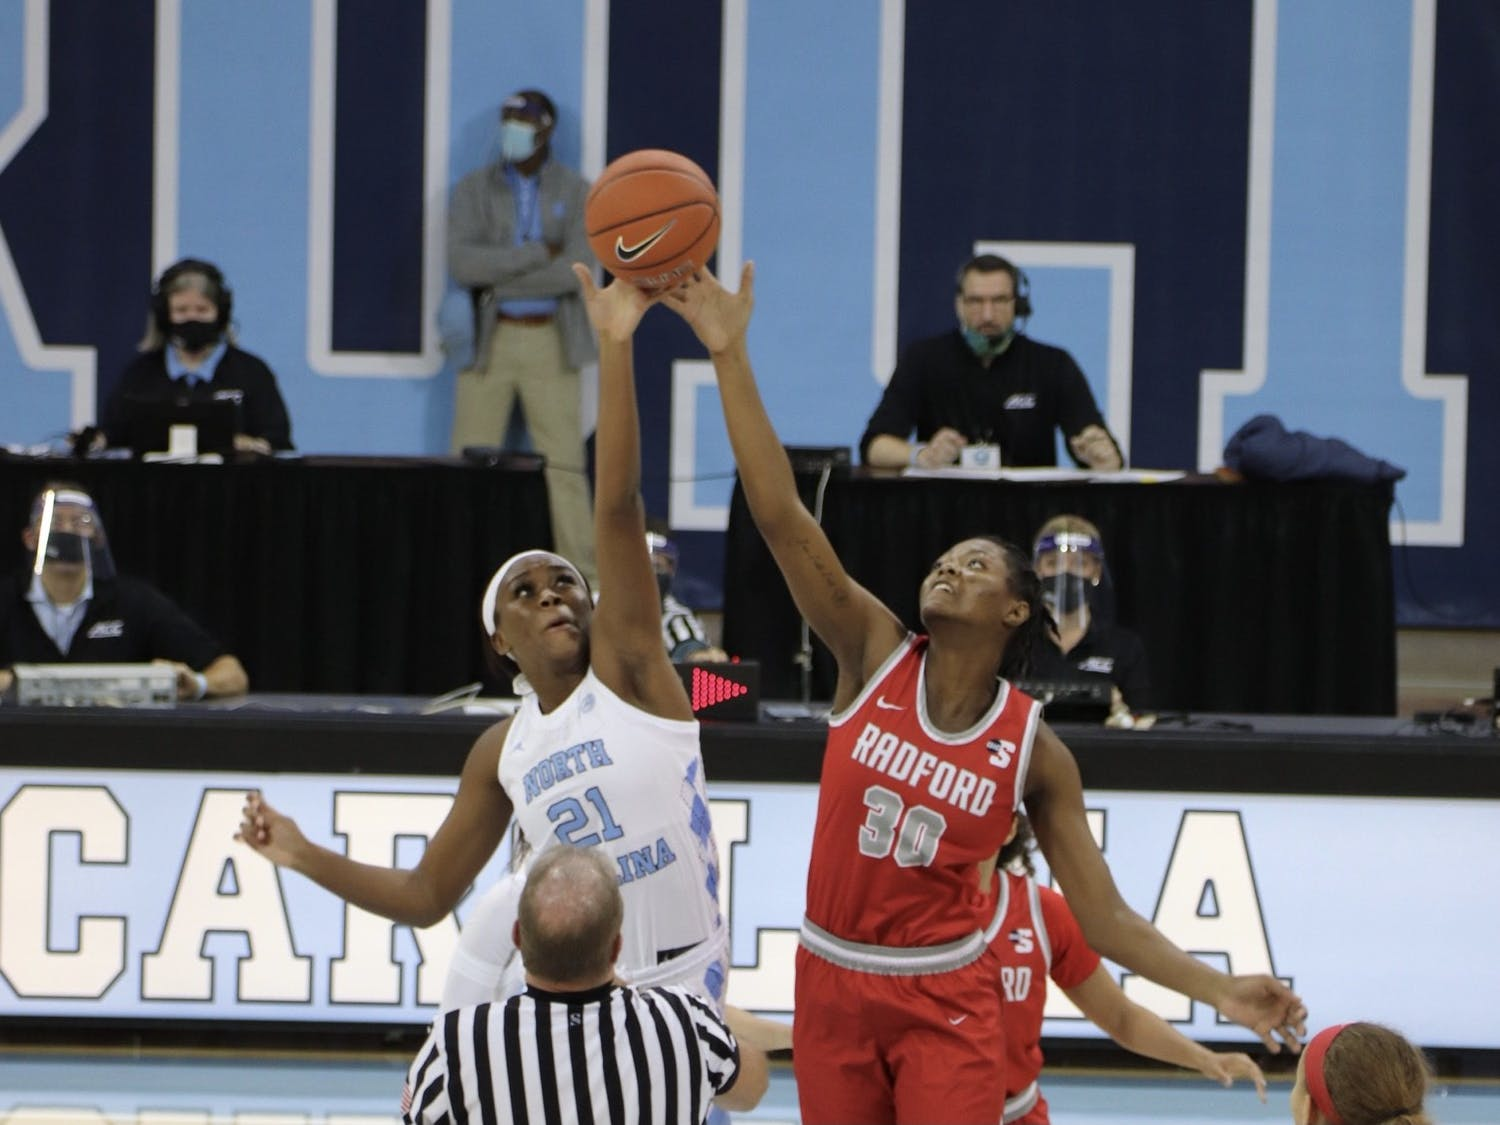 UNC sophomore forward Malu Tshitenge (21) goes up against Radford sophomore center Taiye Johnson (30) during a game in Carmichael Arena on Wednesday, Nov. 25, 2020. UNC beat Radford 90-61.